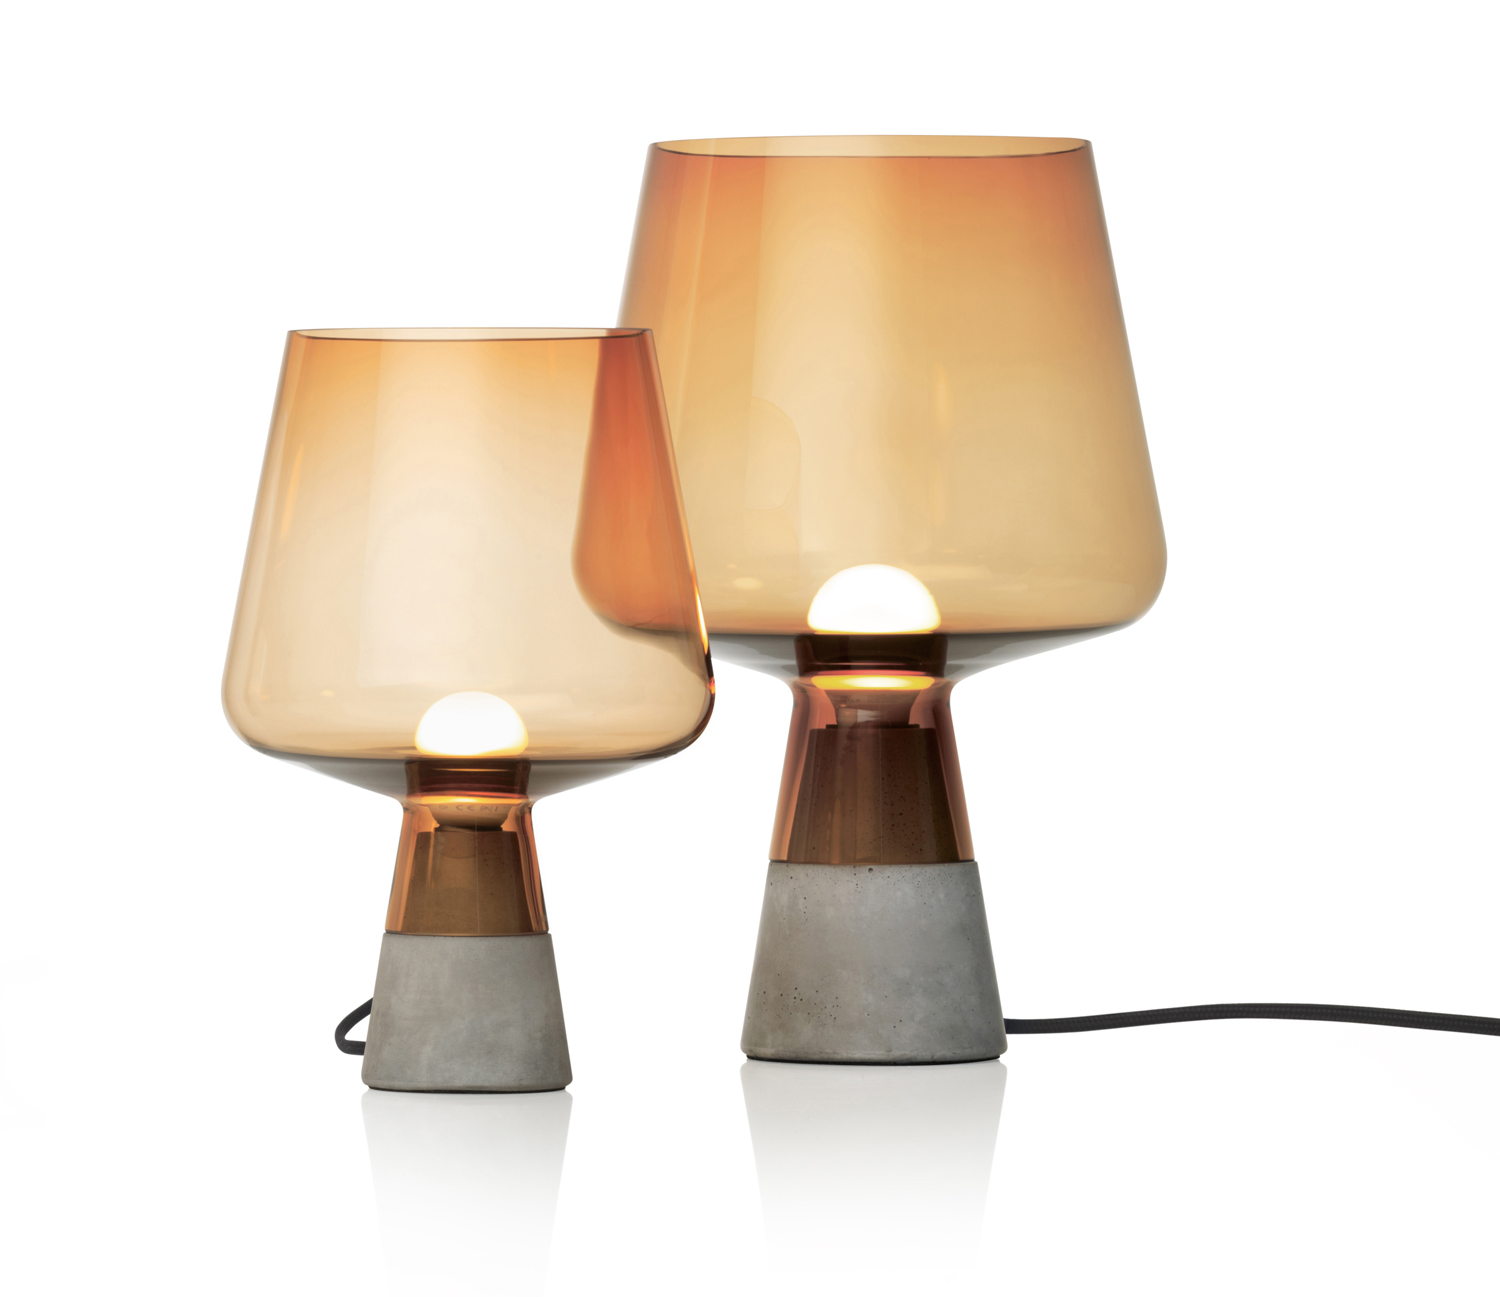 The sinuous 'Leimu' lamps for Iittala